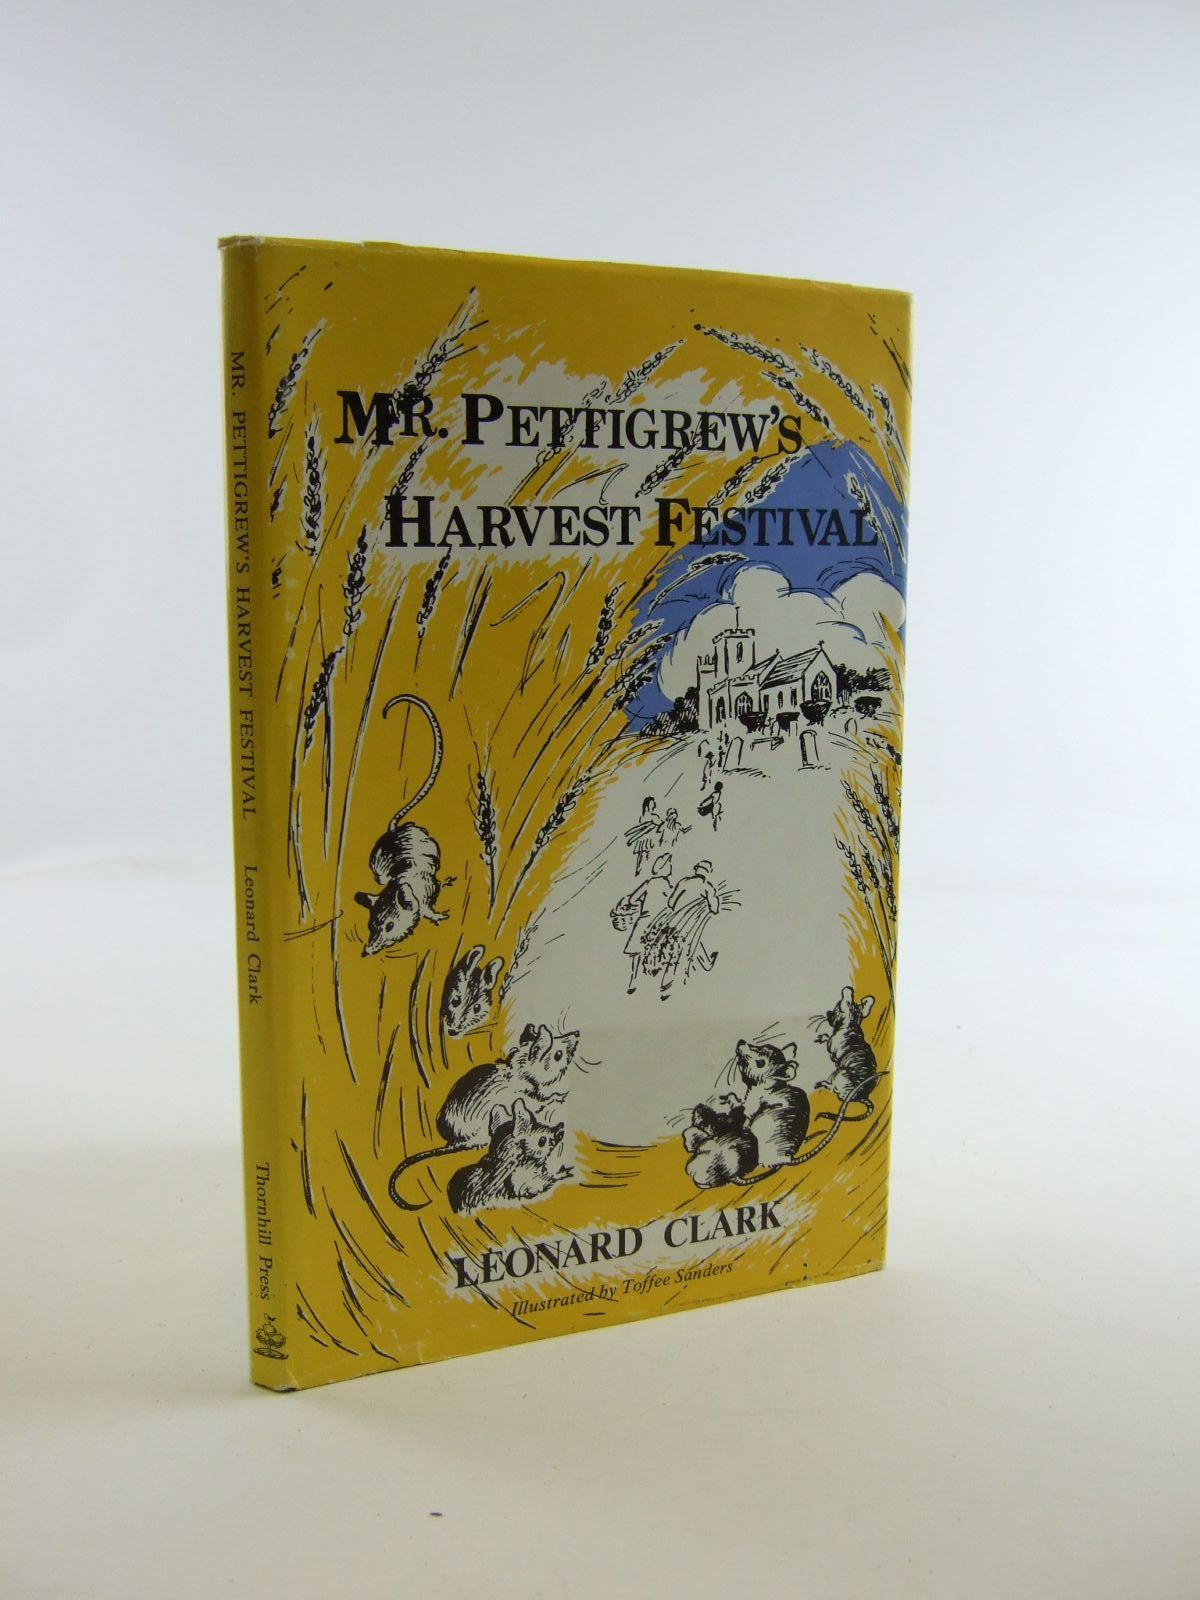 Photo of MR. PETTIGREW'S HARVEST FESTIVAL written by Clark, Leonard illustrated by Sanders, Toffee published by Thornhill Press (STOCK CODE: 1206910)  for sale by Stella & Rose's Books